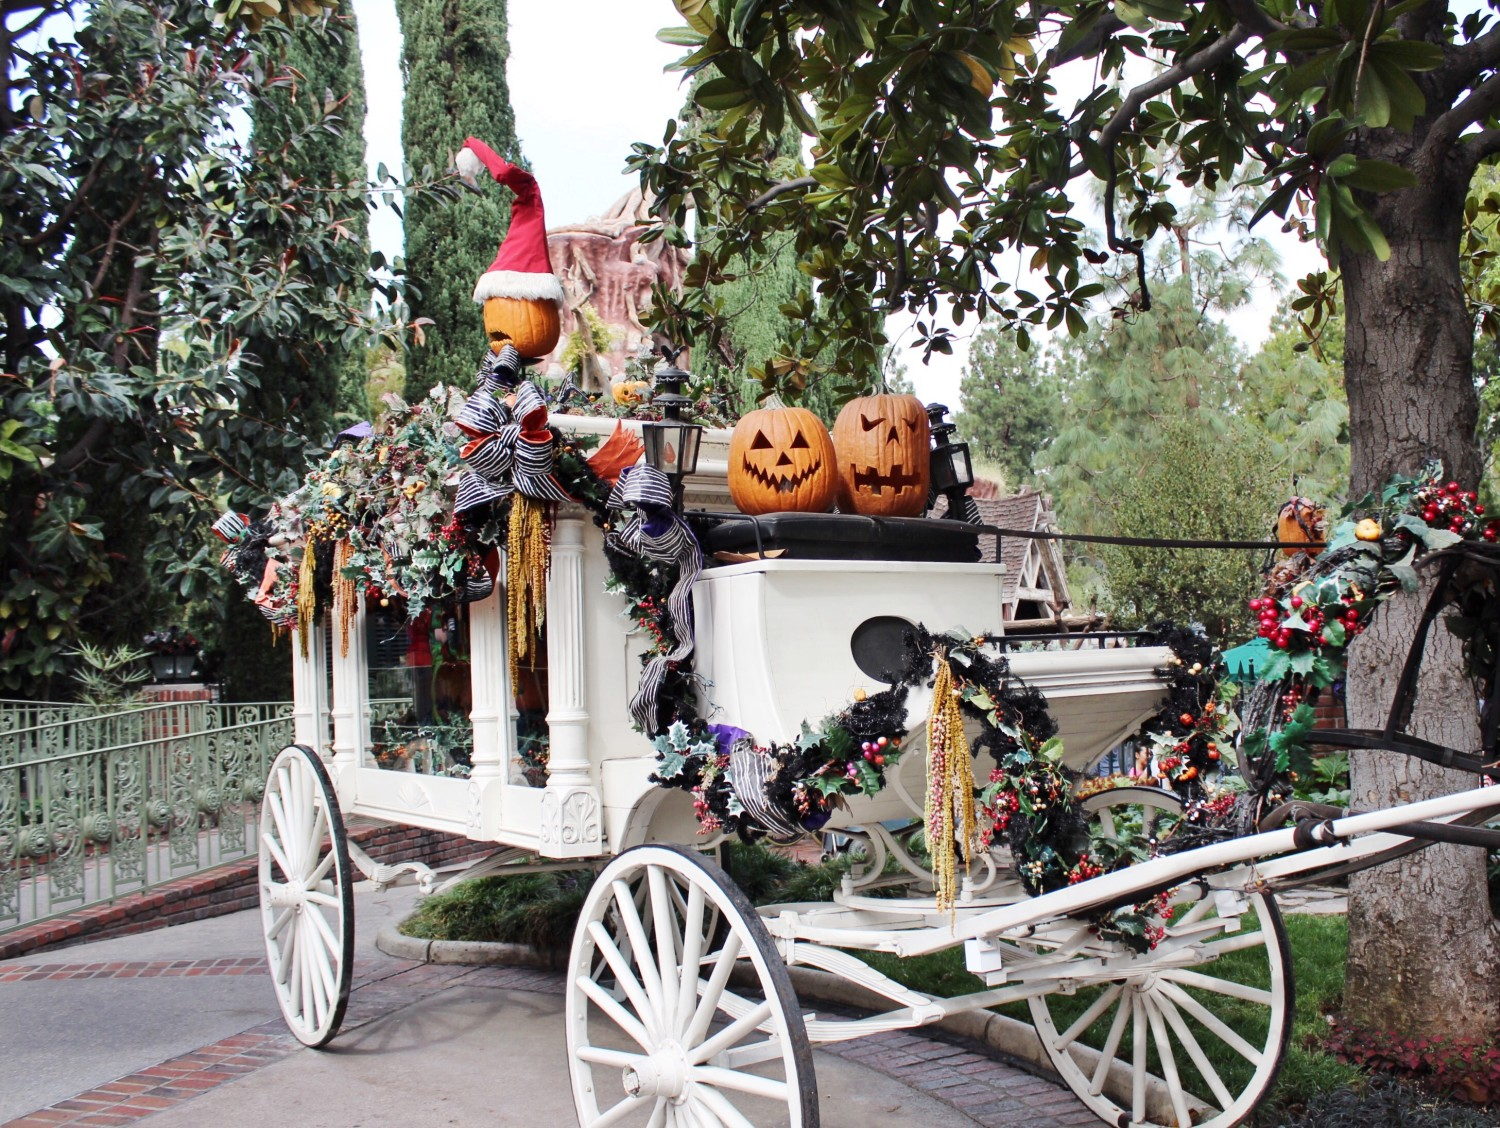 Disneyland Haunted Mansion Holiday carriage